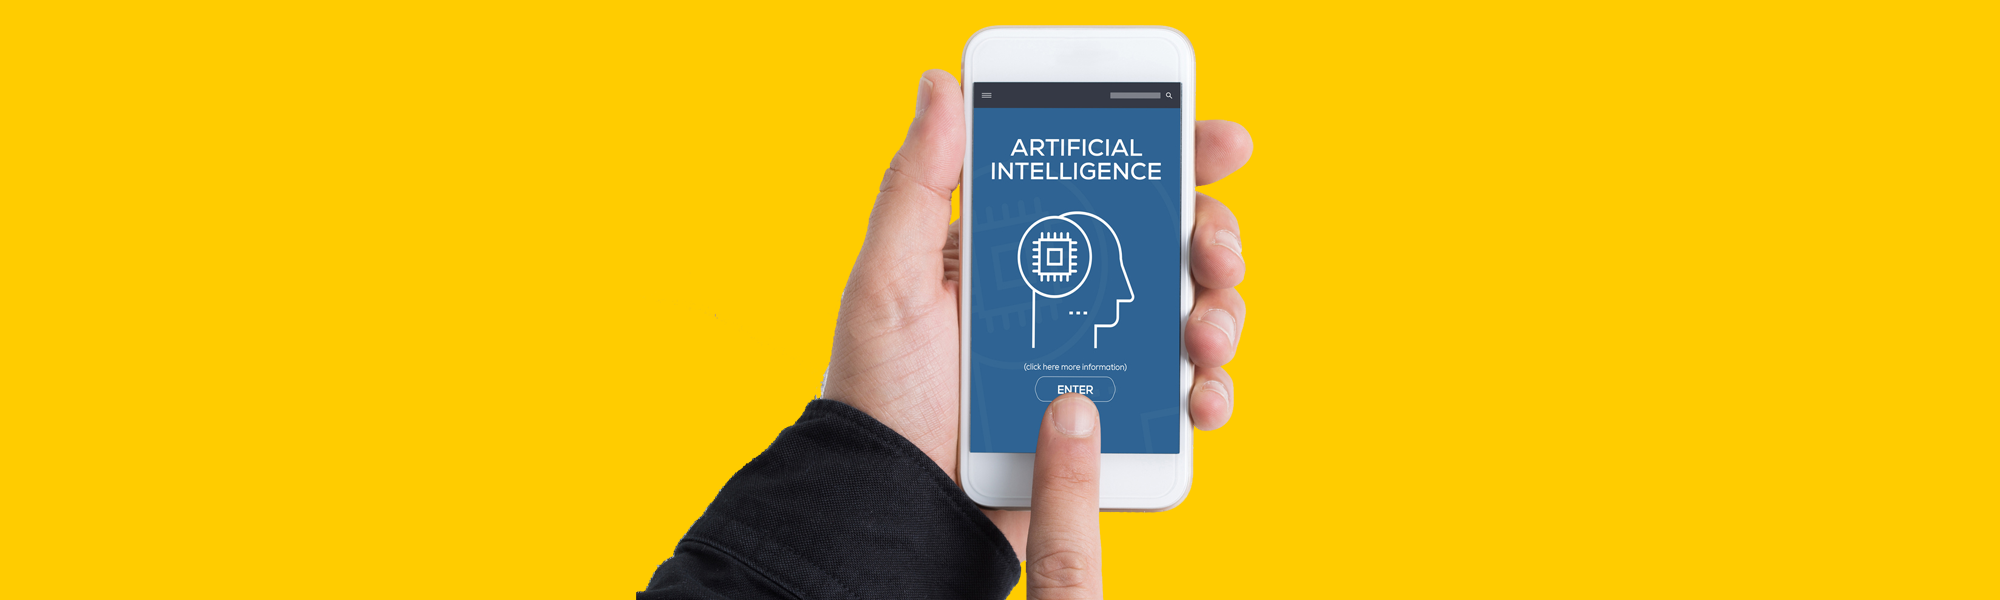 3 Industries That Enterprise Software Companies Are Redefining Using AI Bots